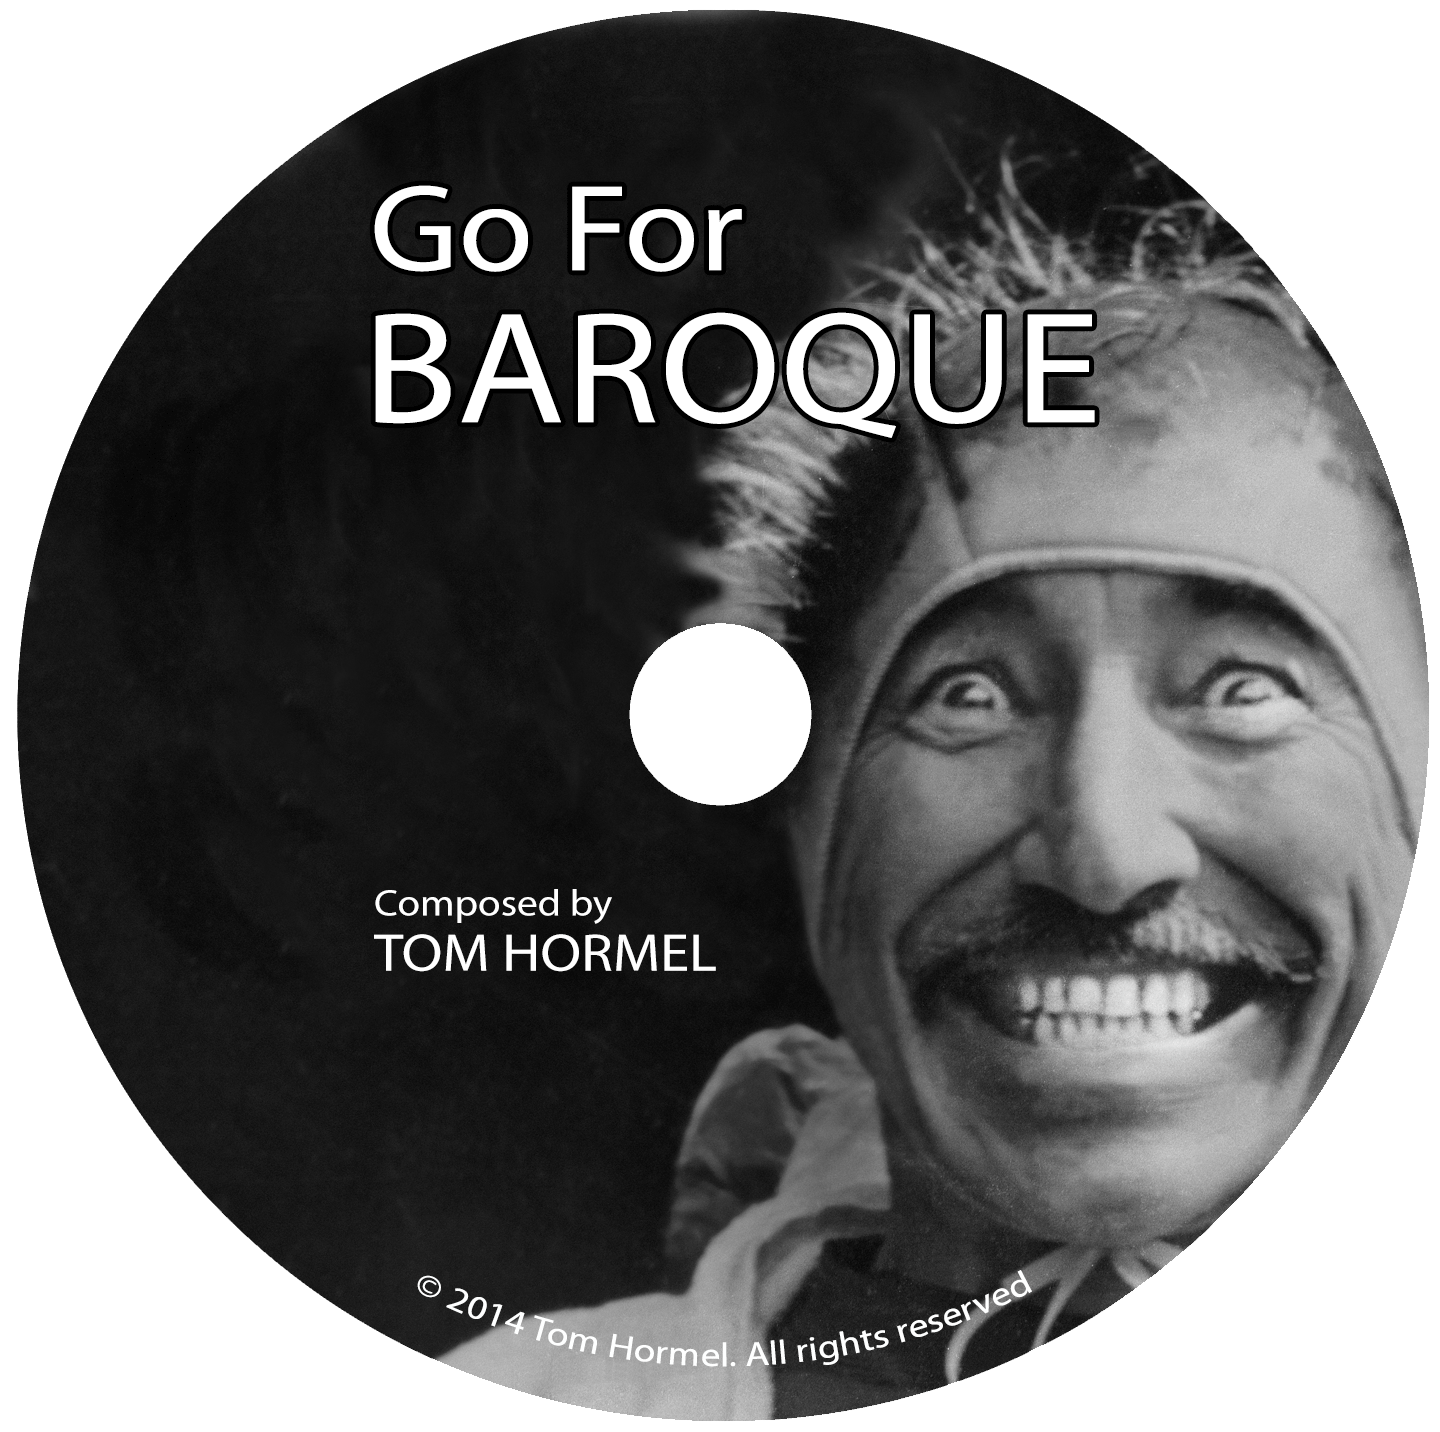 """Go For Baroque"" from Go For Baroque by Tom Hormel. Released: 2014. Track 1 of 1."